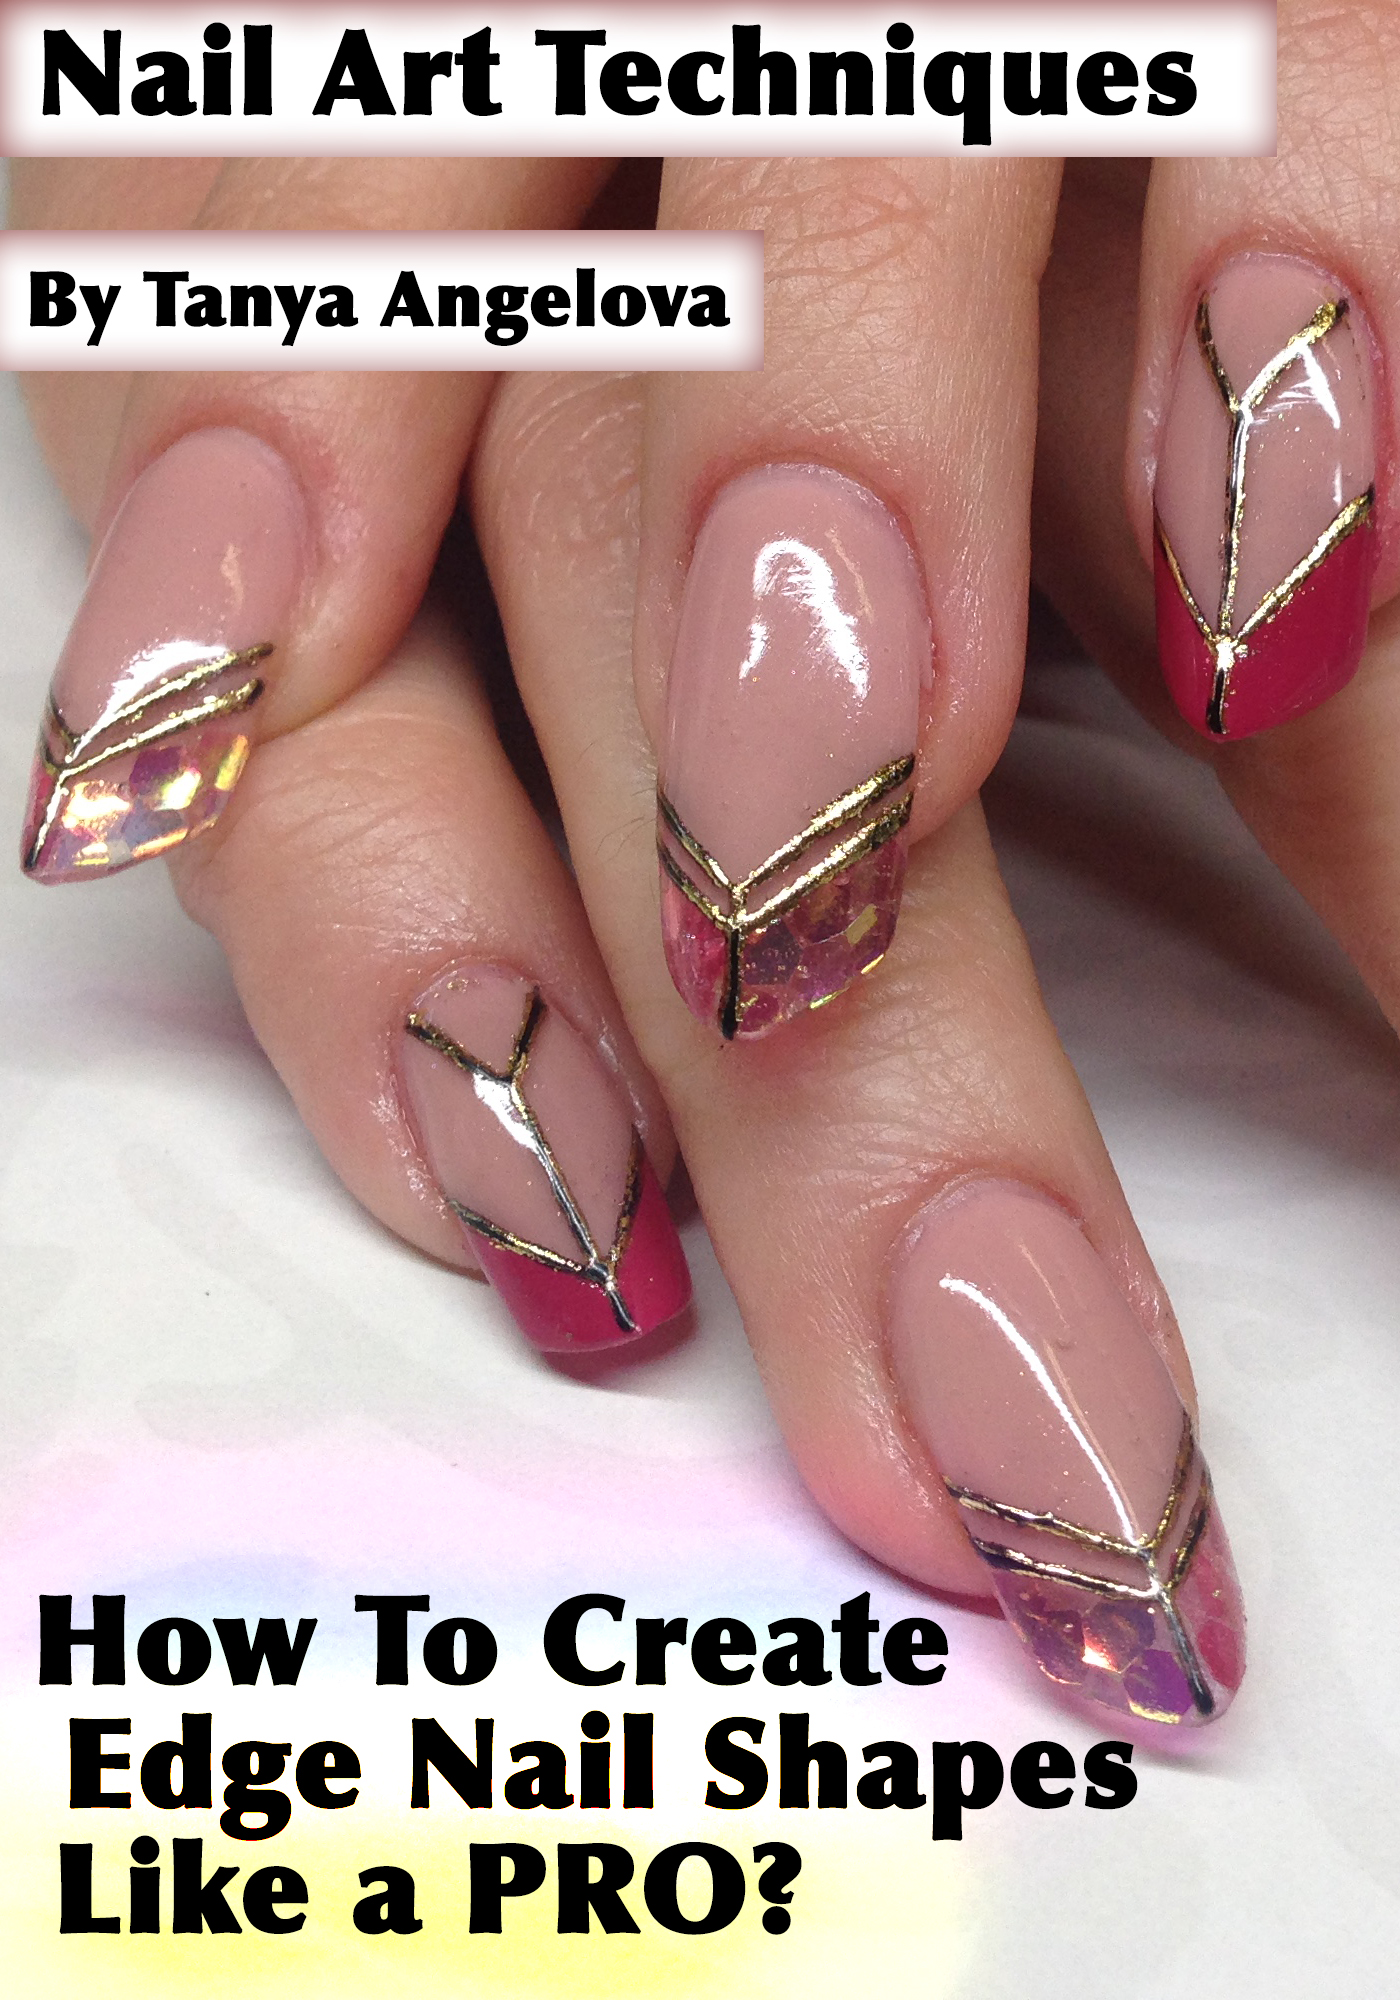 Smashwords Modern Nail Shapes How To Make Stiletto And Edge UV Gel Extensions Like A Pro